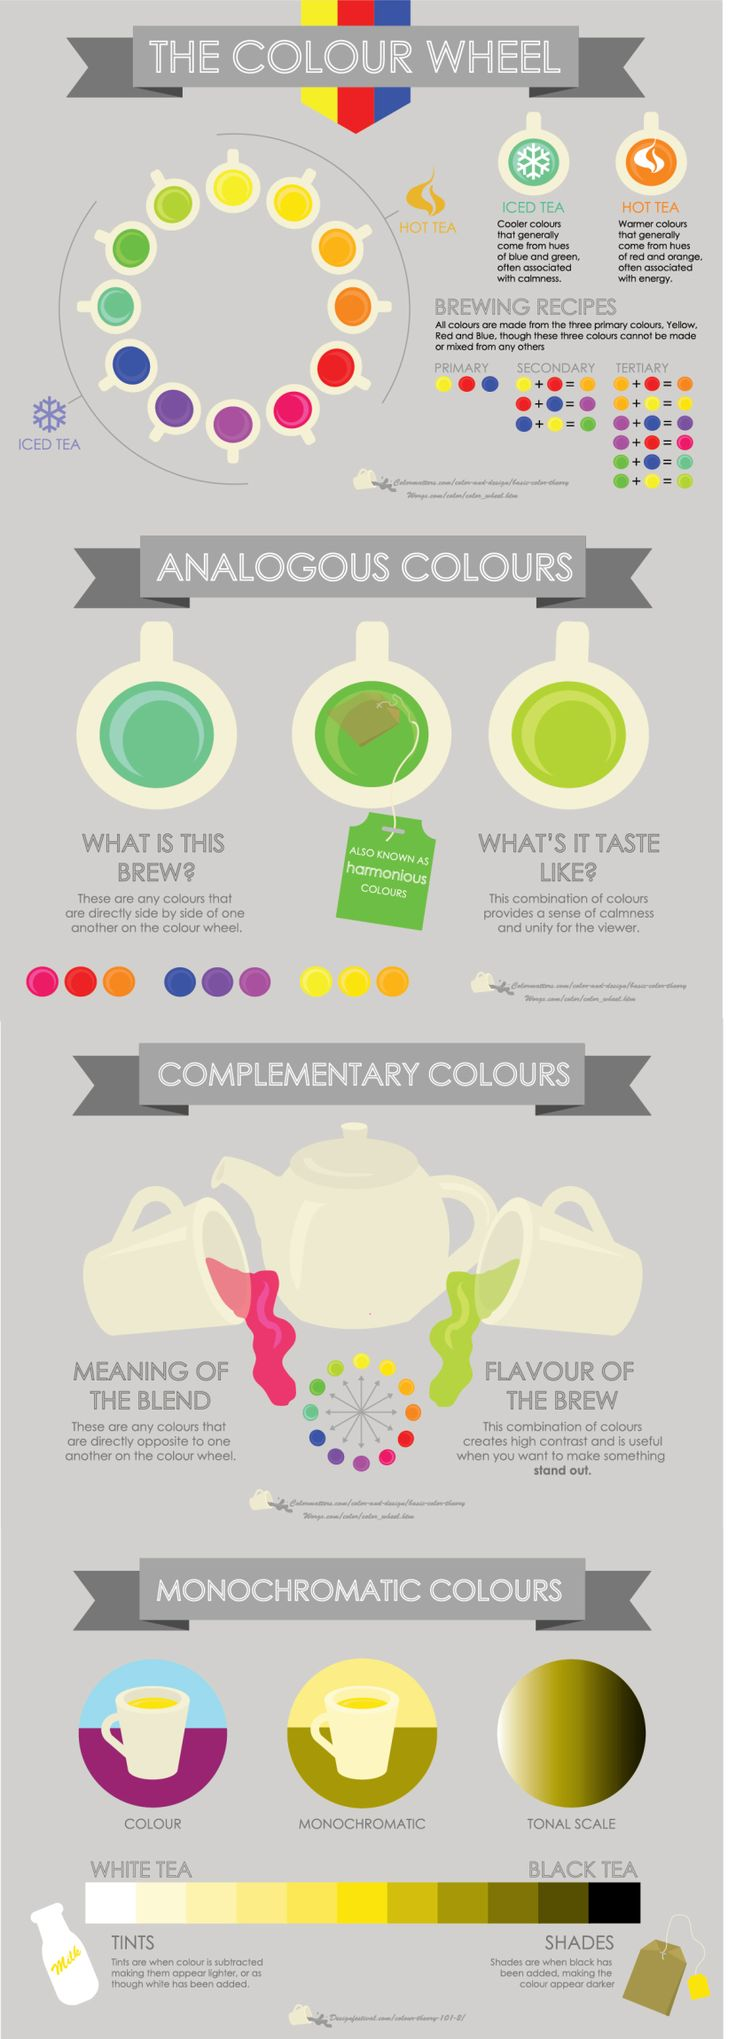 21 best complementary colour schemes images on Pinterest